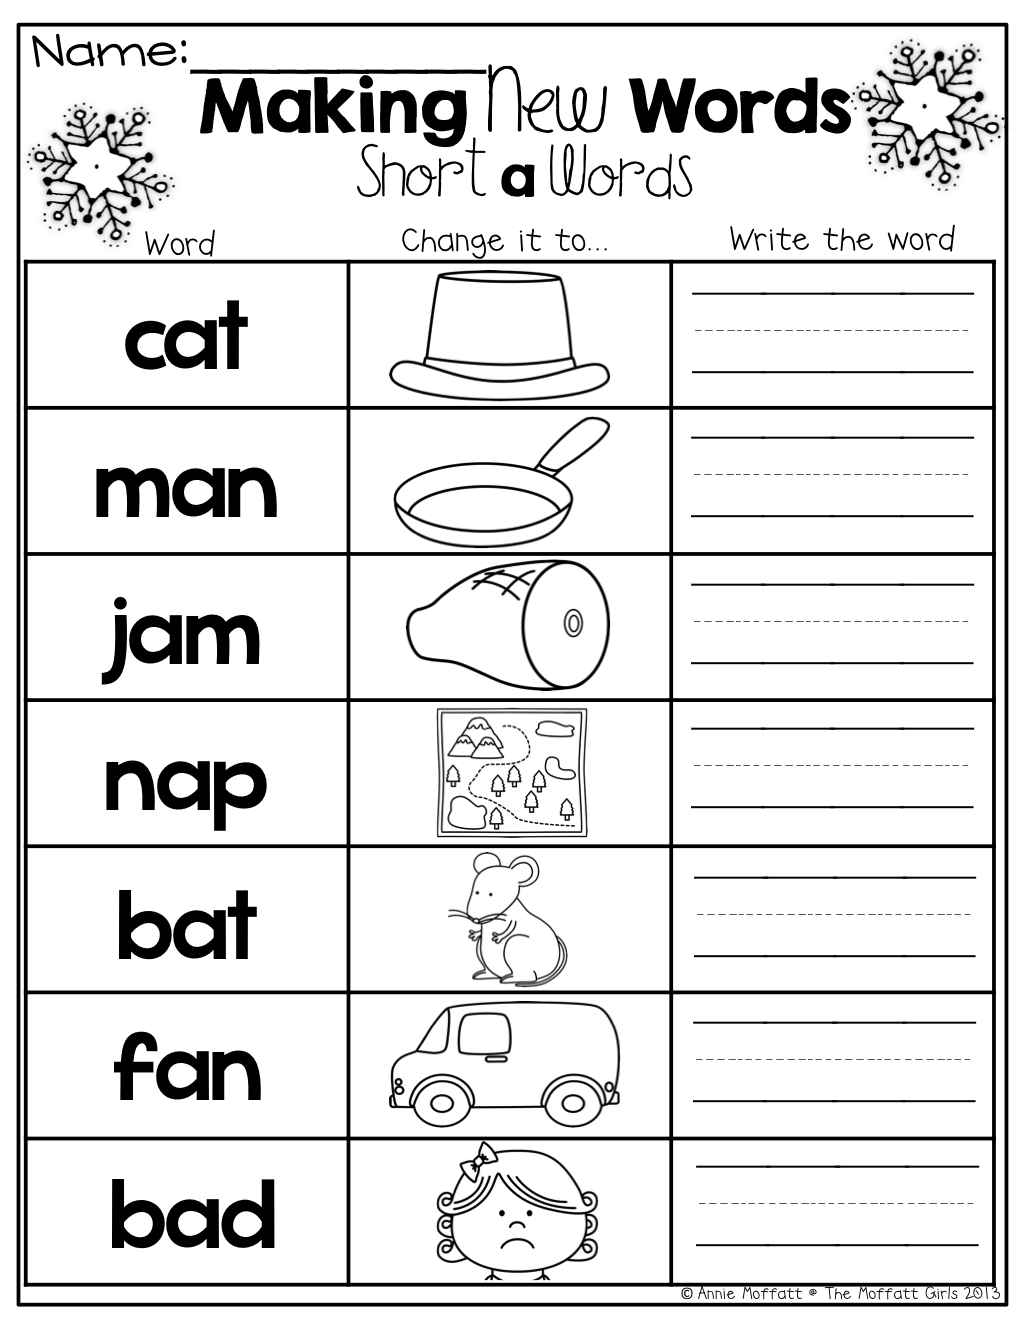 Worksheets Beginning Sounds Worksheets make new words by changing the beginning sound skool dayz sound